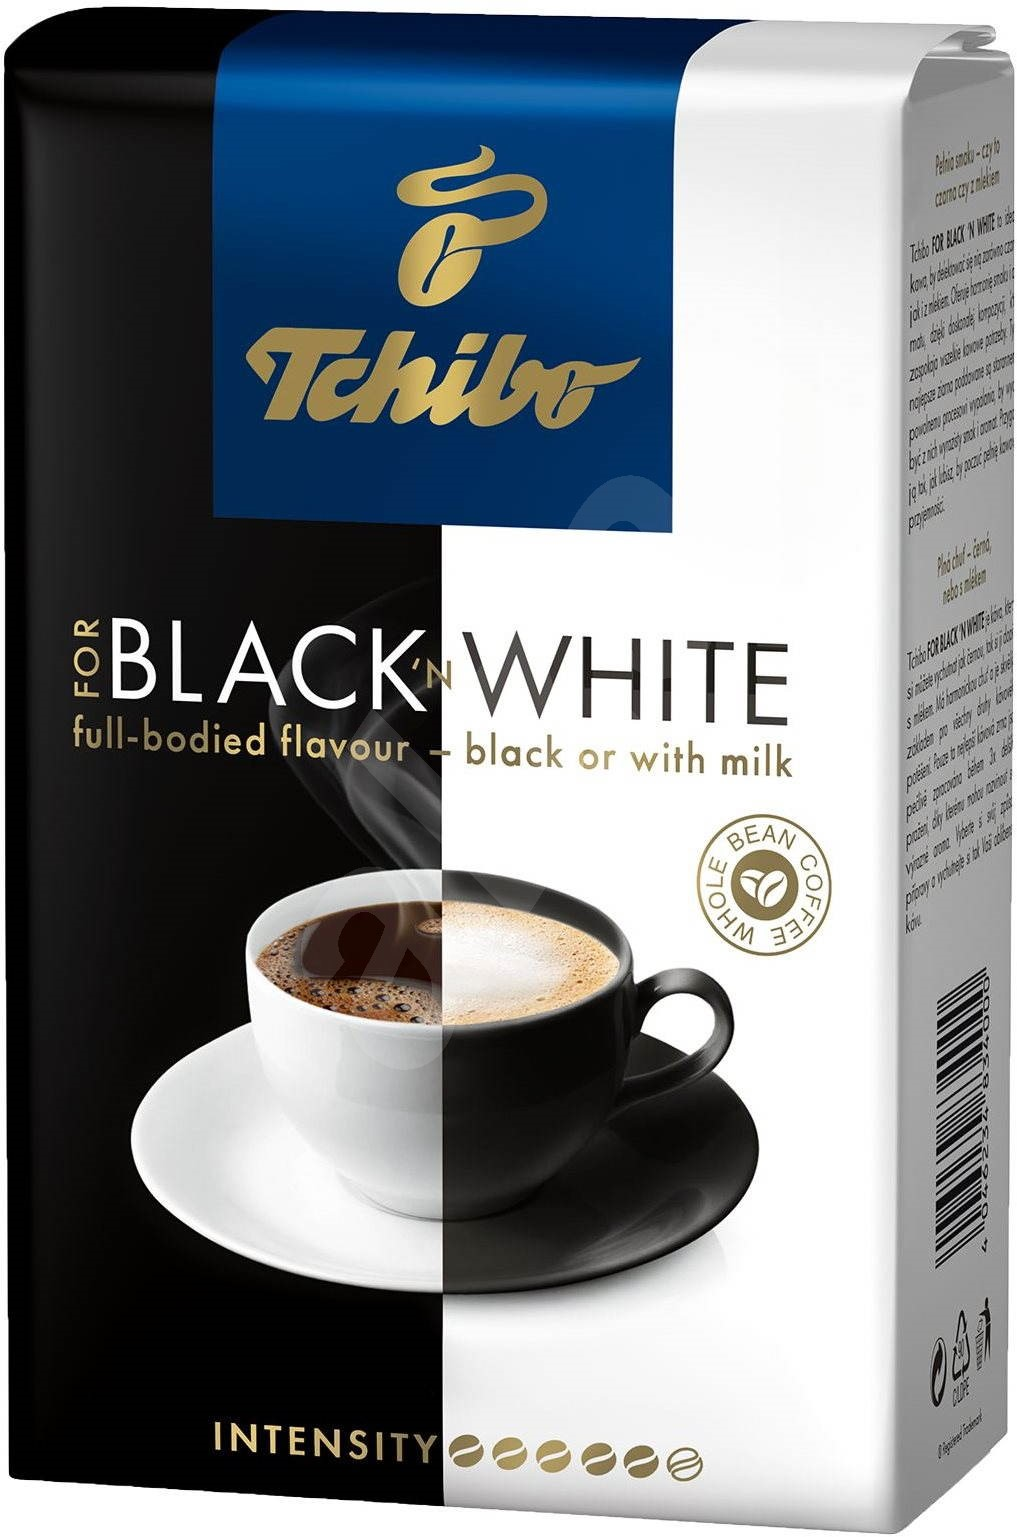 tchibo black white 500g beans coffee. Black Bedroom Furniture Sets. Home Design Ideas